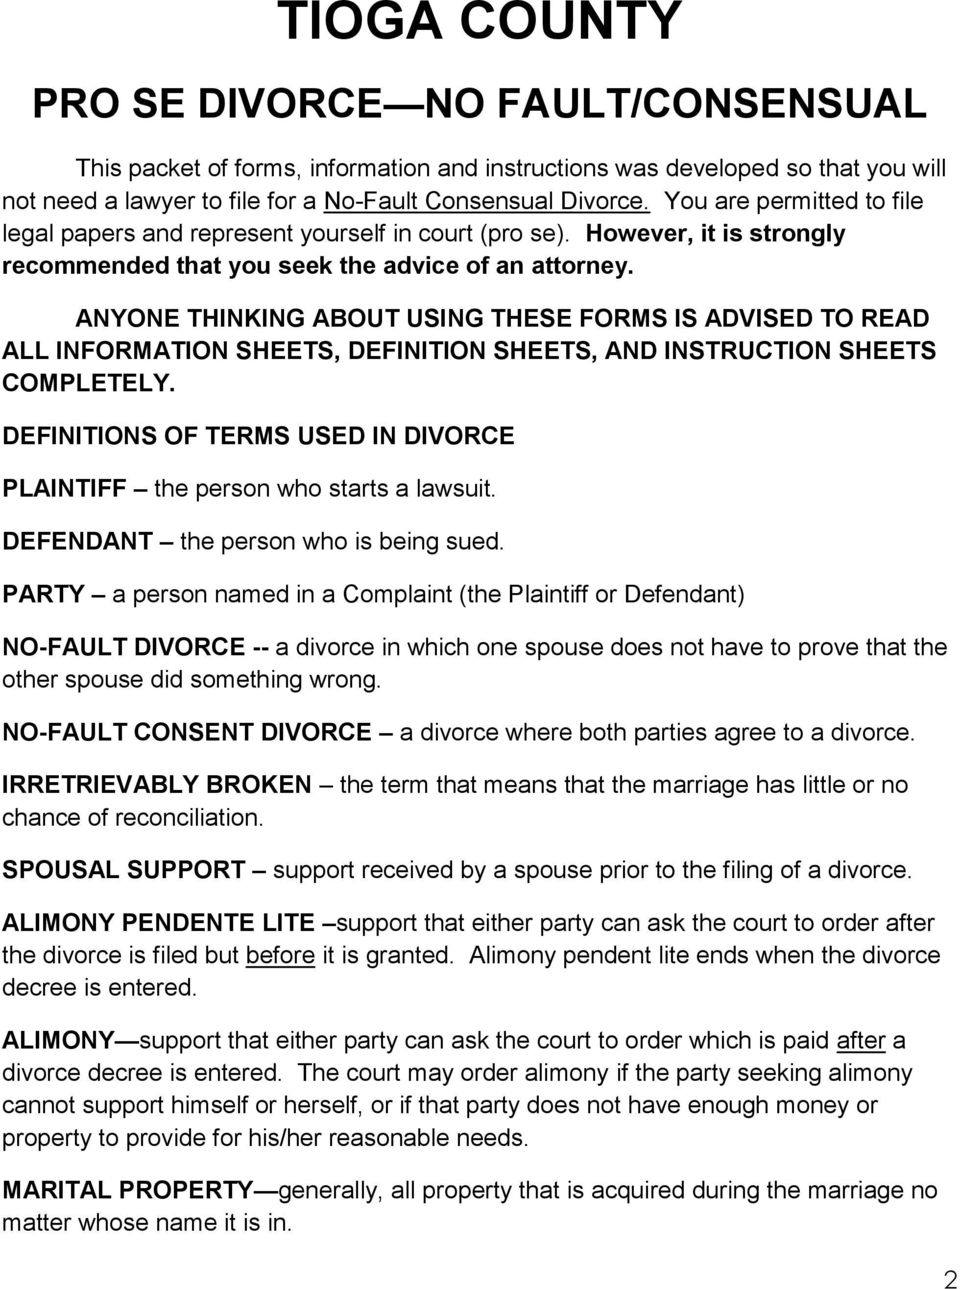 Tioga county divorce where parties consent to the divorce and no anyone thinking about using these forms is advised to read all information sheets definition sheets solutioingenieria